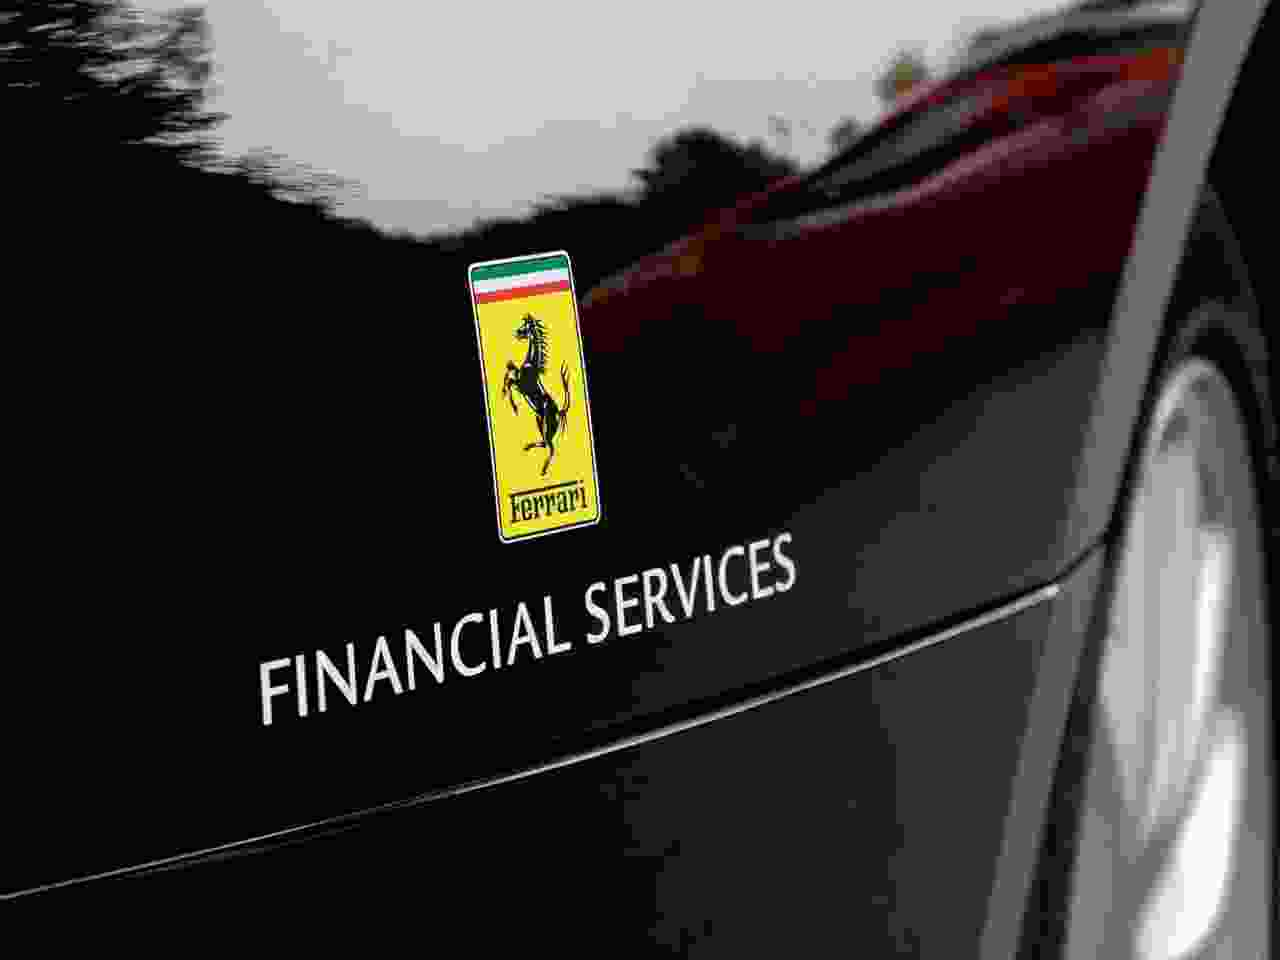 Ferrari Financial Service